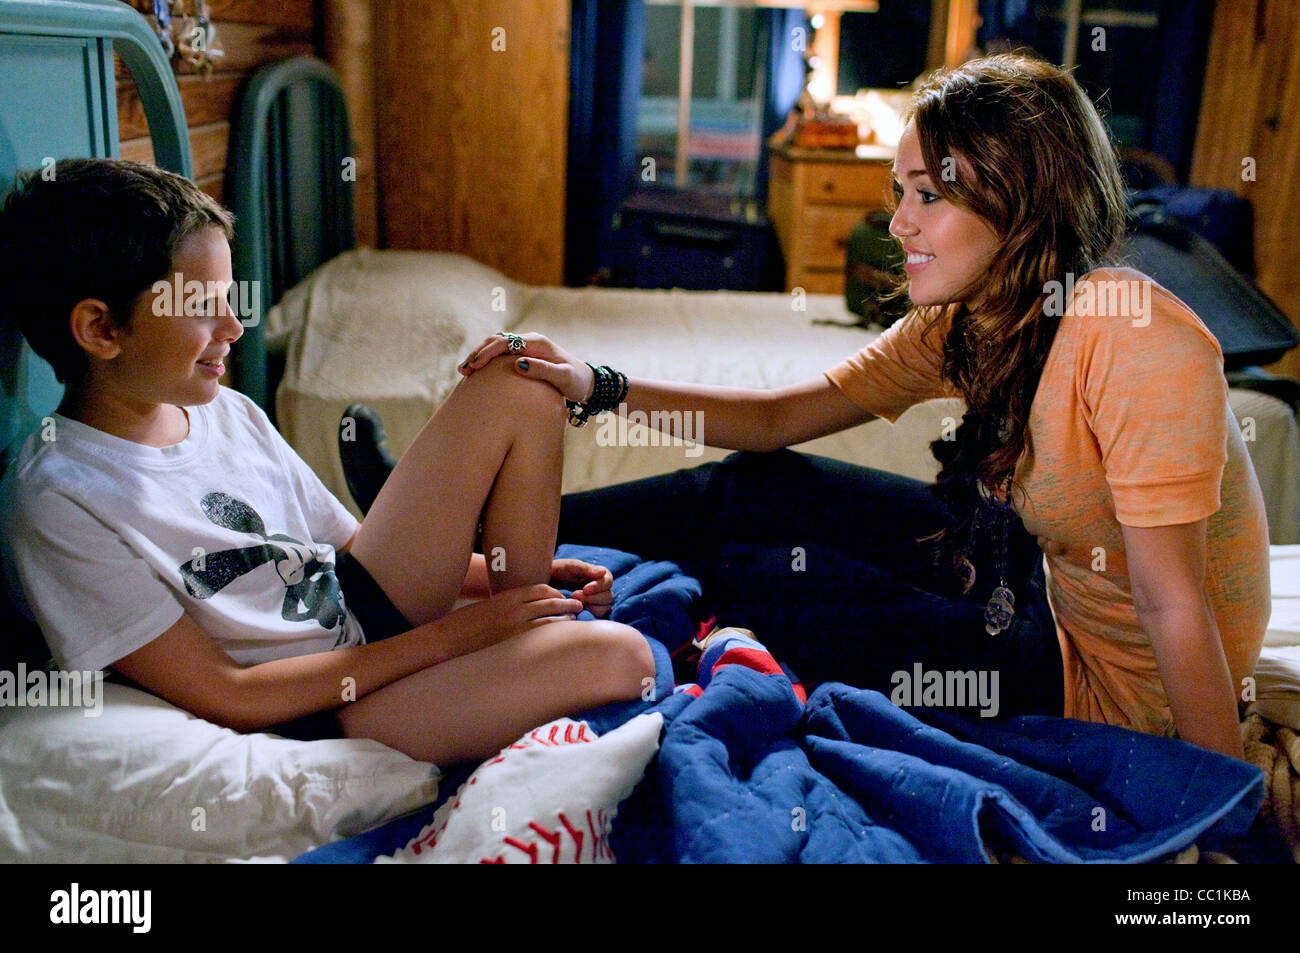 BOBBY COLEMAN & MILEY CYRUS THE LAST SONG (2010) Stock Photo